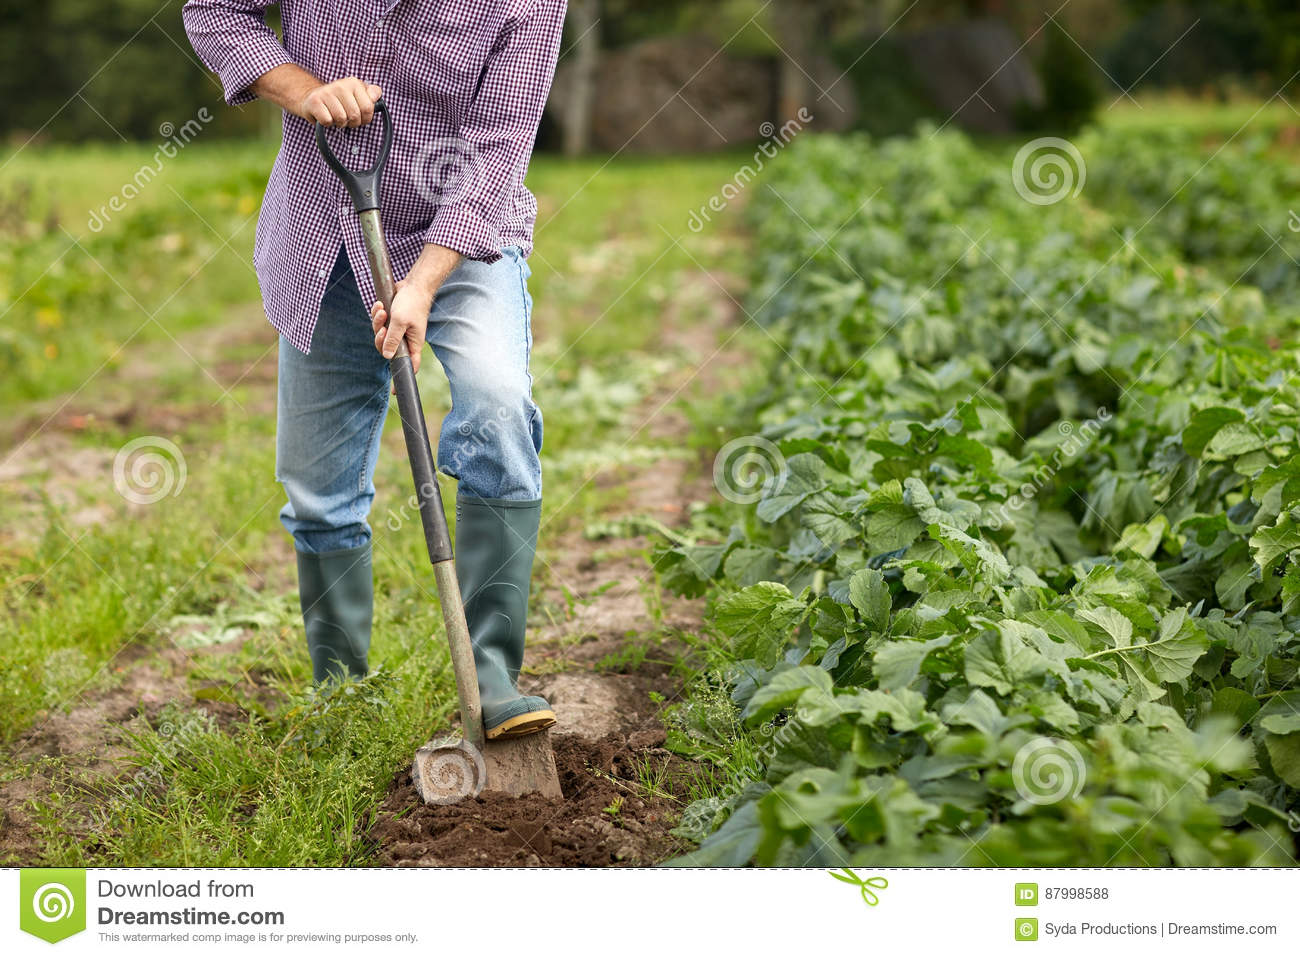 Man digging in vegetable garden stock image for Digging ground dream meaning